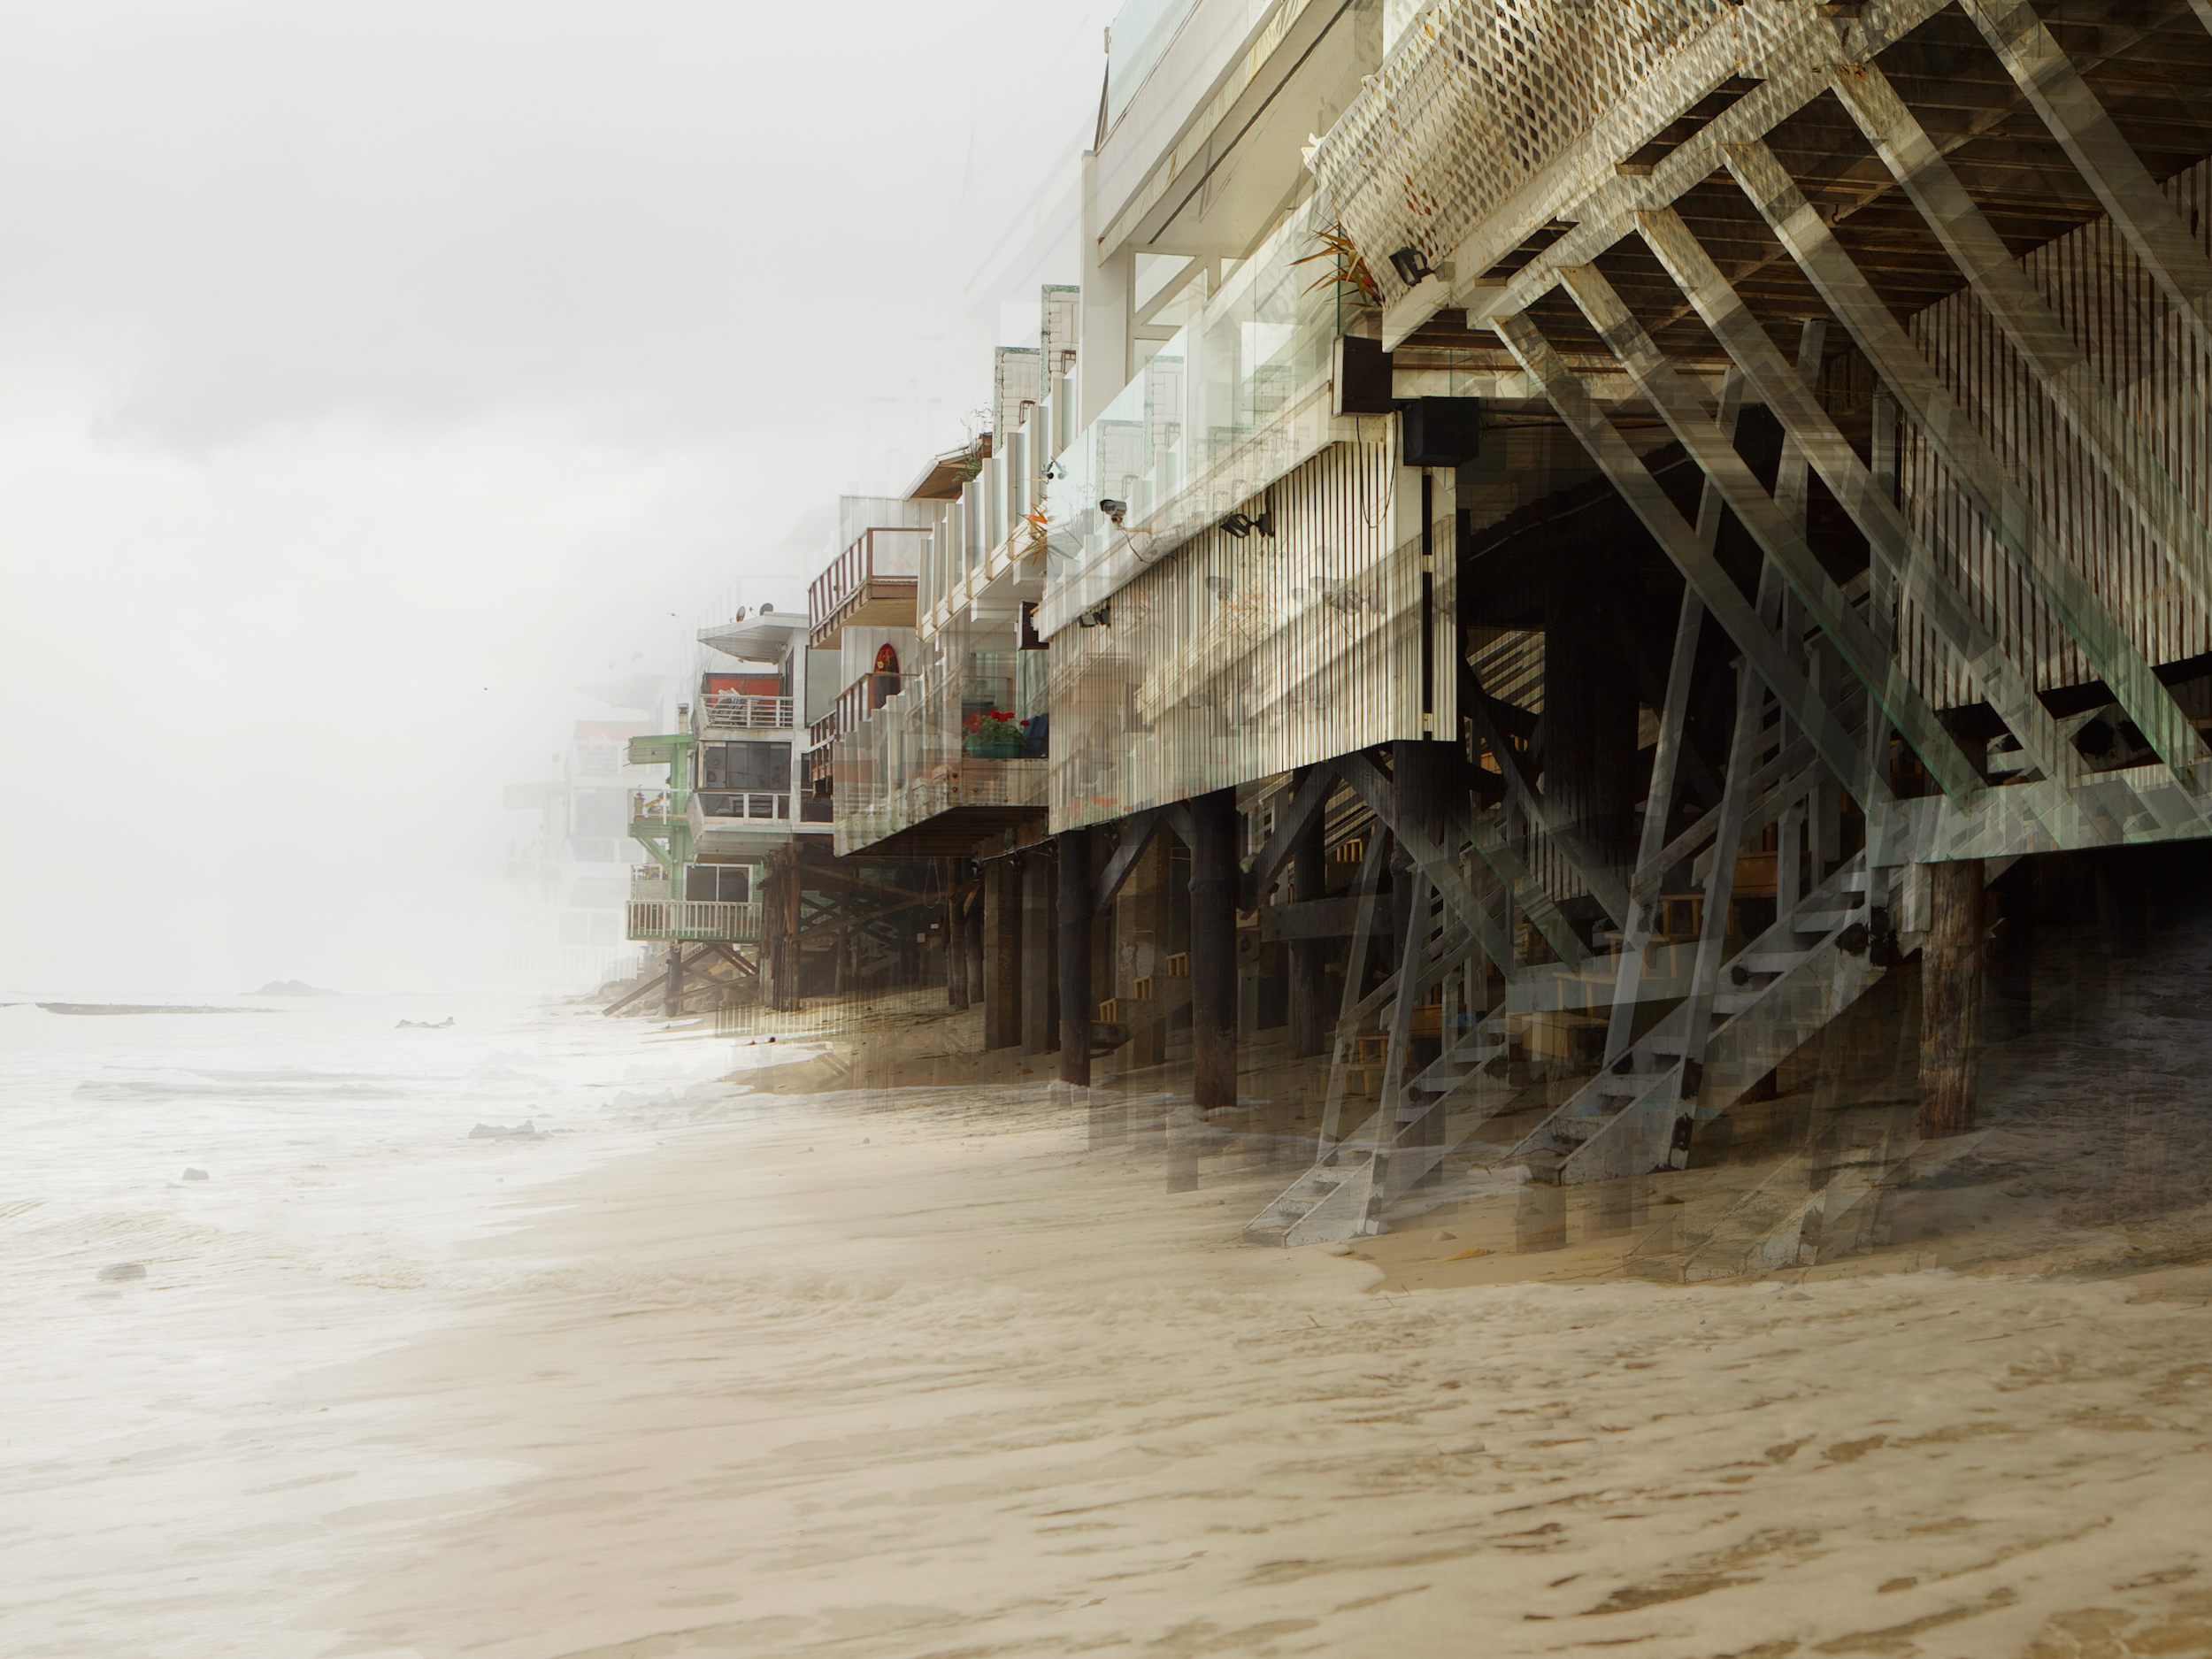 Untitled #10  (Nowhere) , 2012/ archival pigment print, 23 1/2 x 31 inches, edition of 3 plus 2 AP